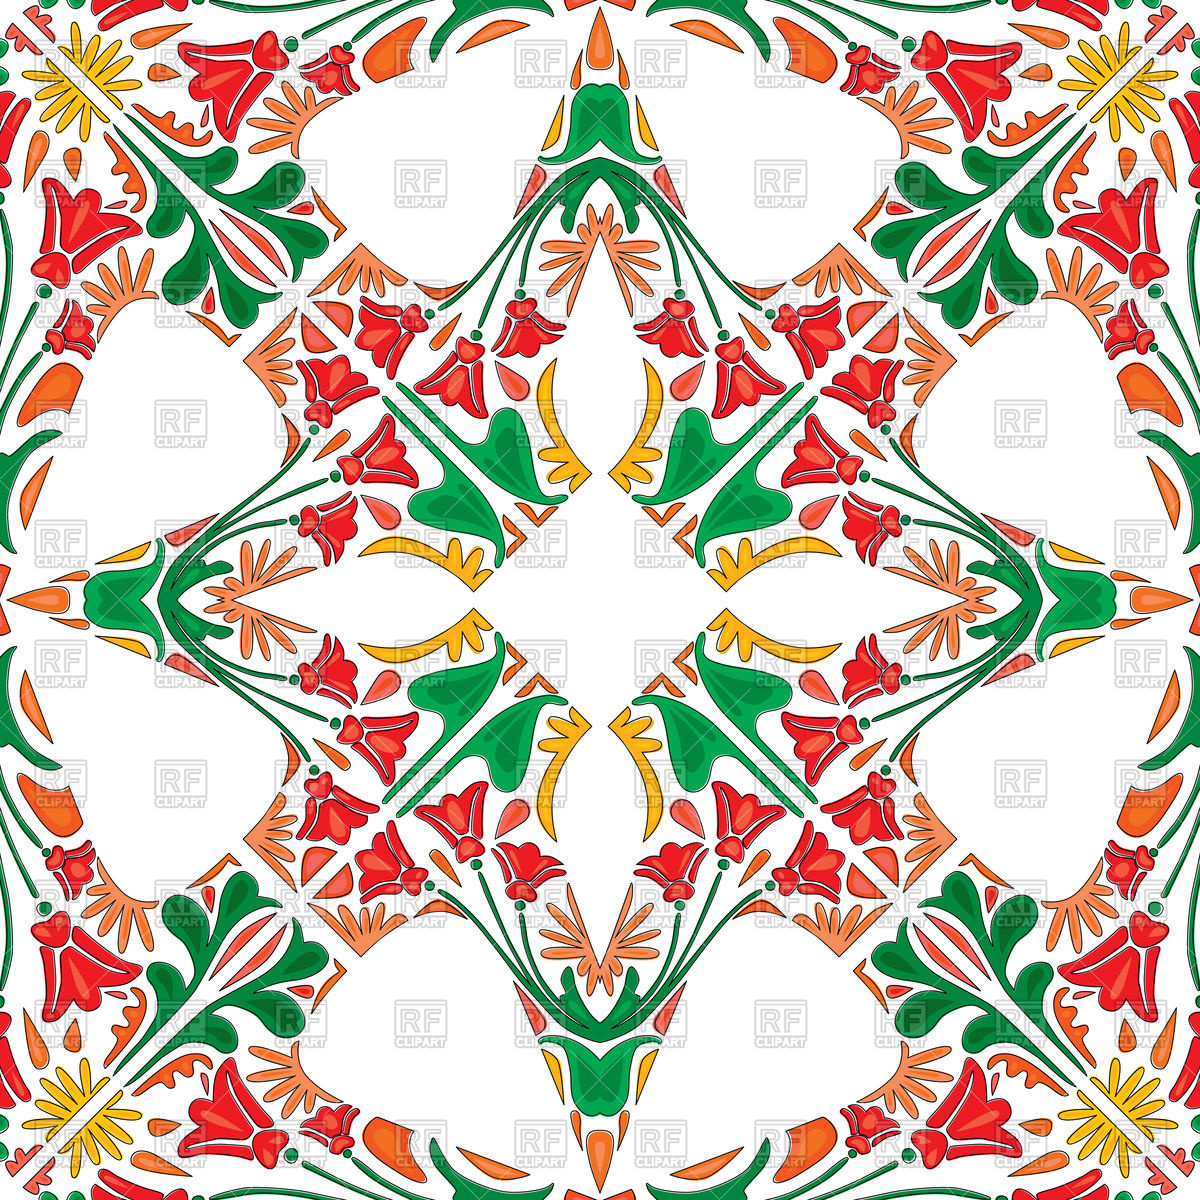 Seamless red pattern in traditional style.